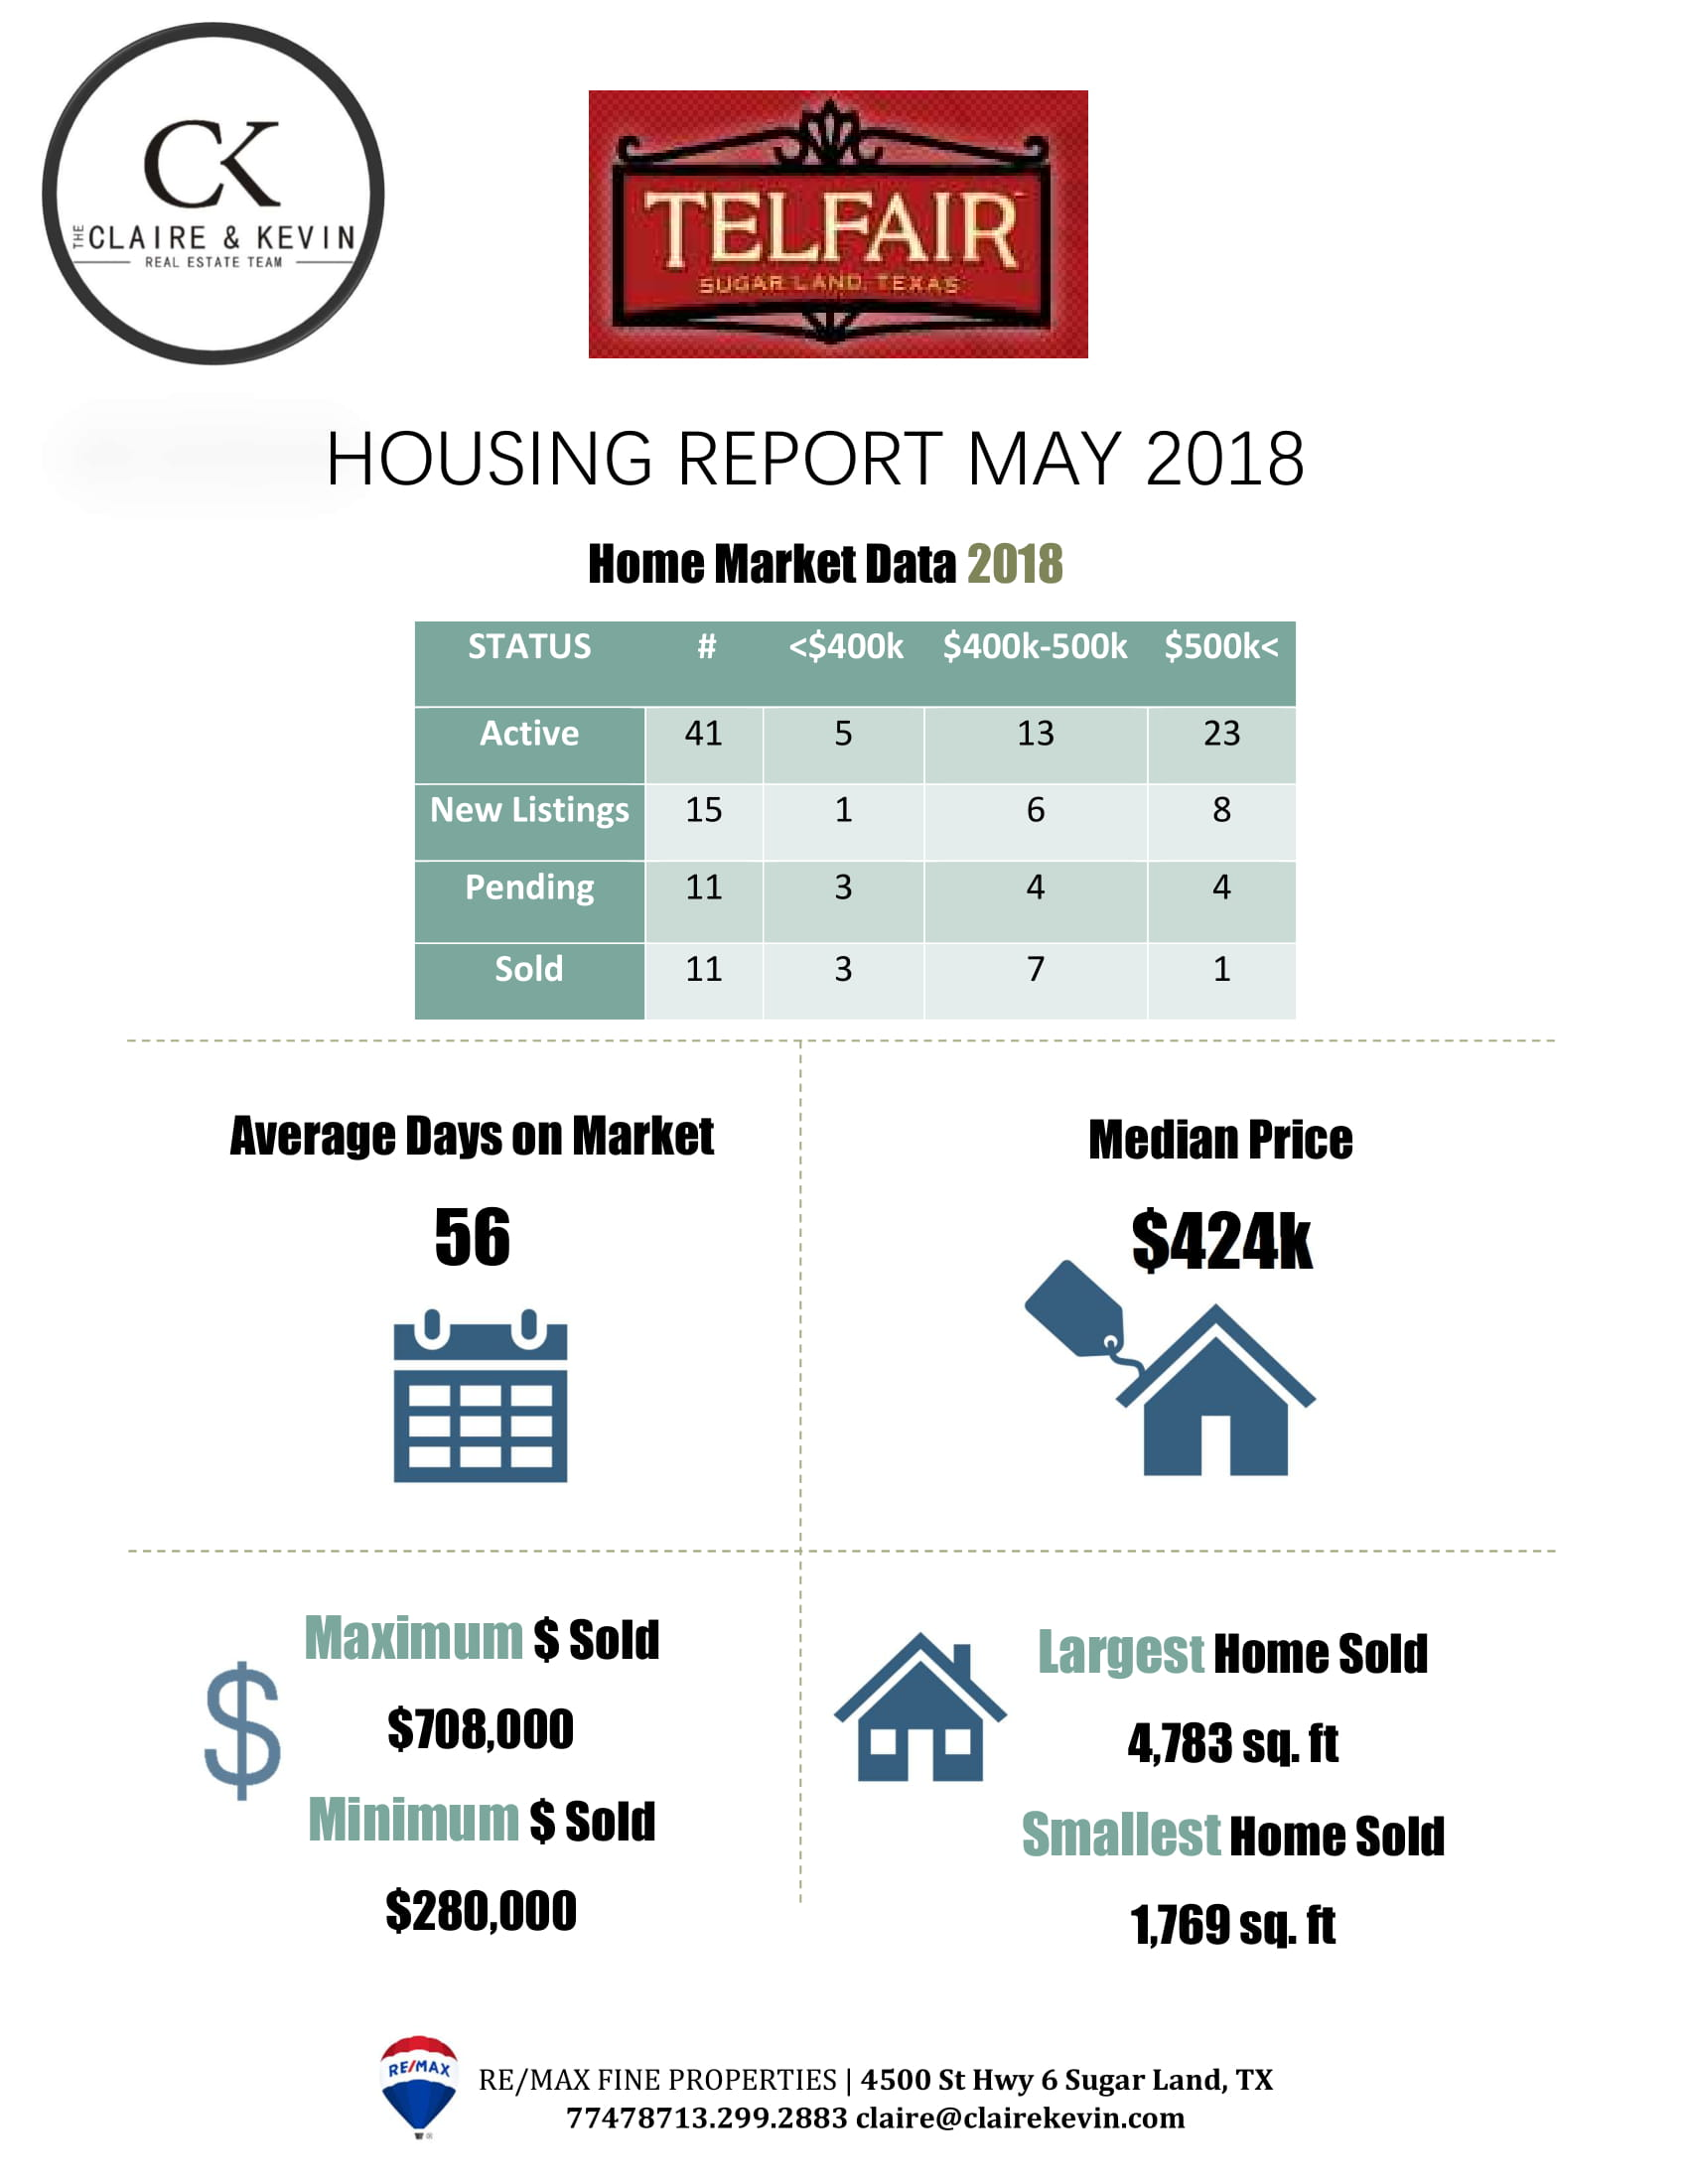 Telfair Housing Report- May 2018 - Claire & Kevin Real Estate Team ...